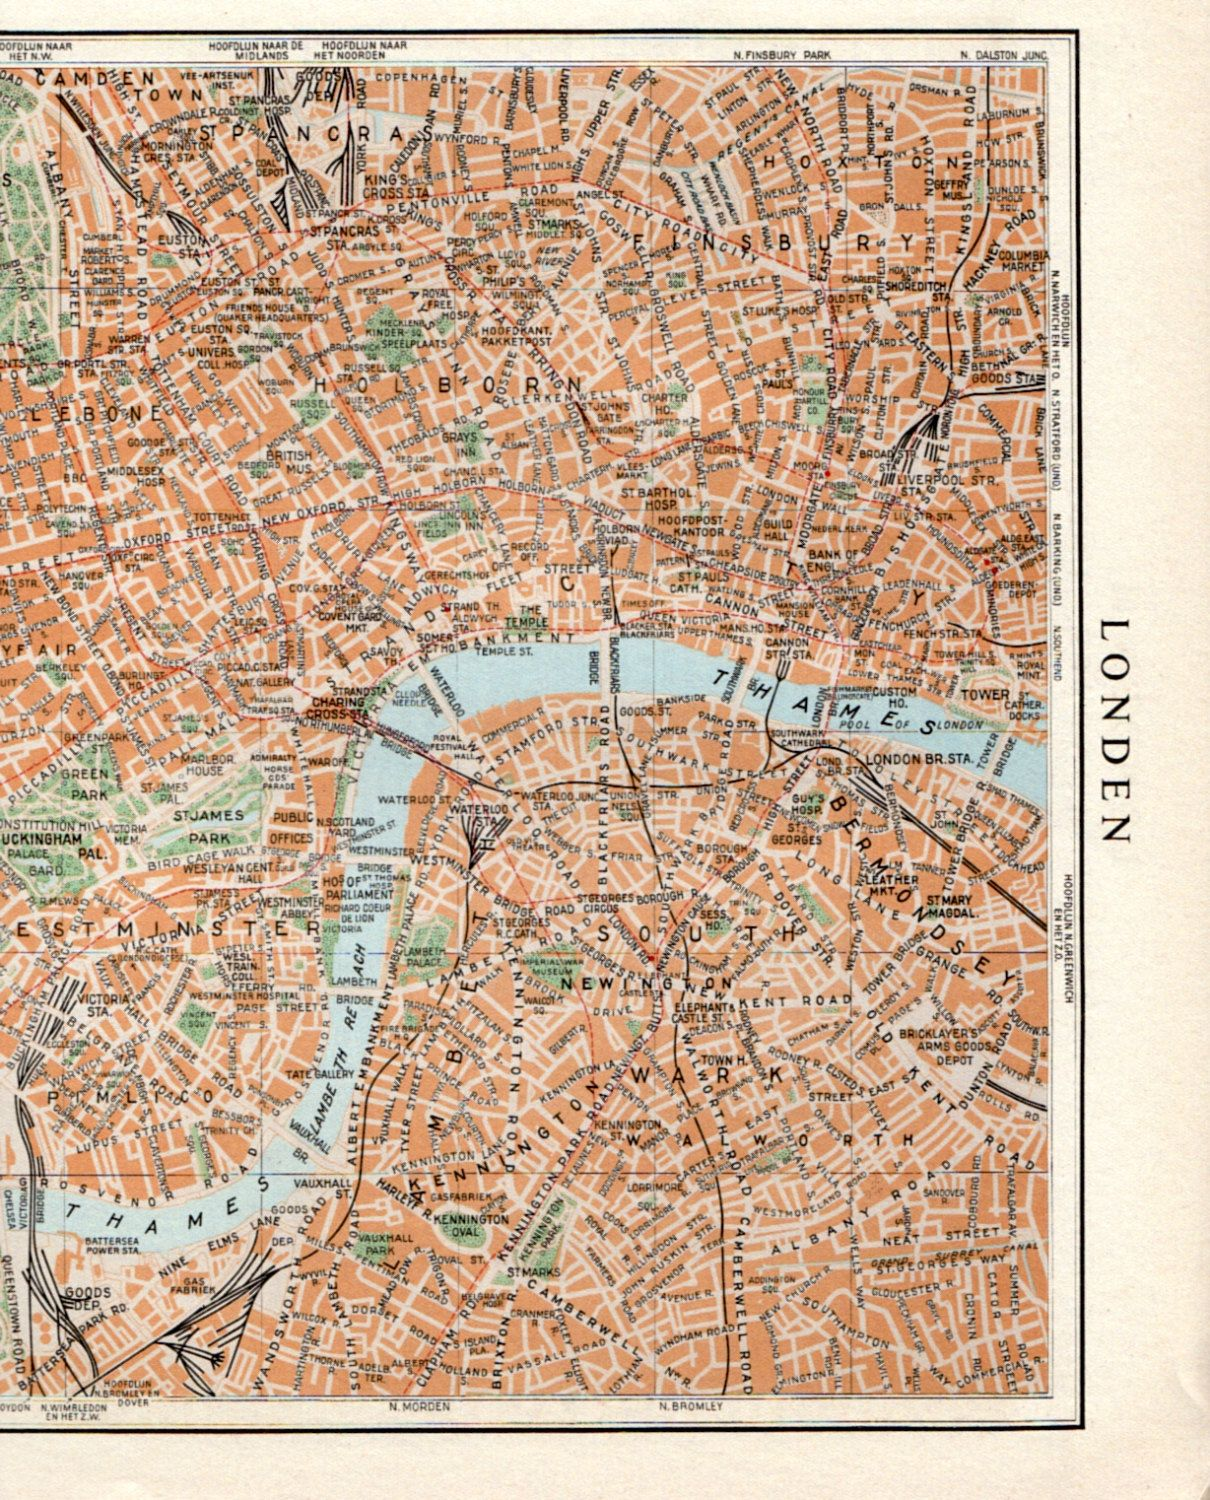 LARGE vintage LONDON map 1950s London street map london travel